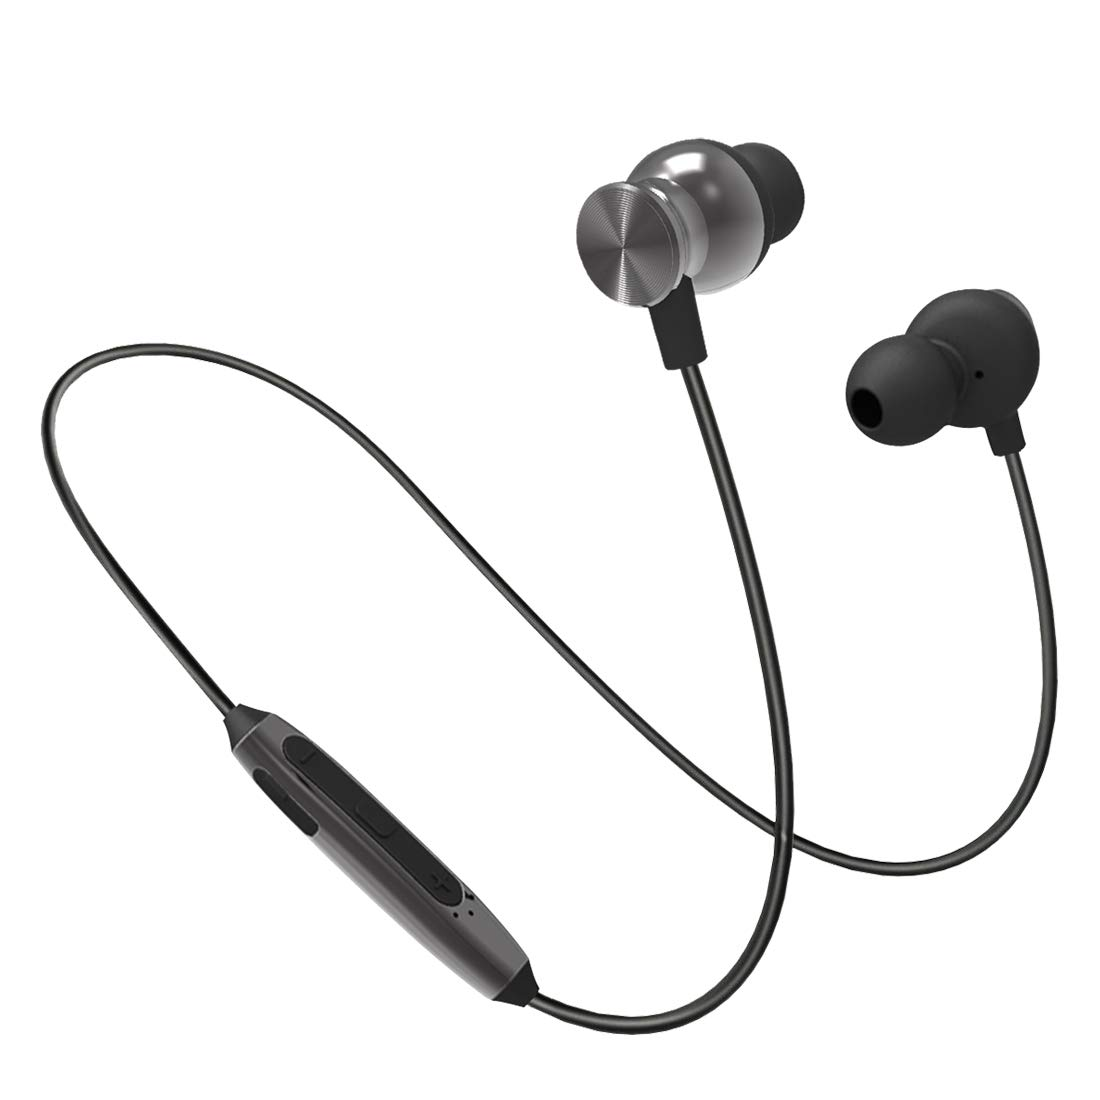 pTron Intunes Pro Magnetic in-Ear Wireless Bluetooth Headphones with Mic - (Gray)